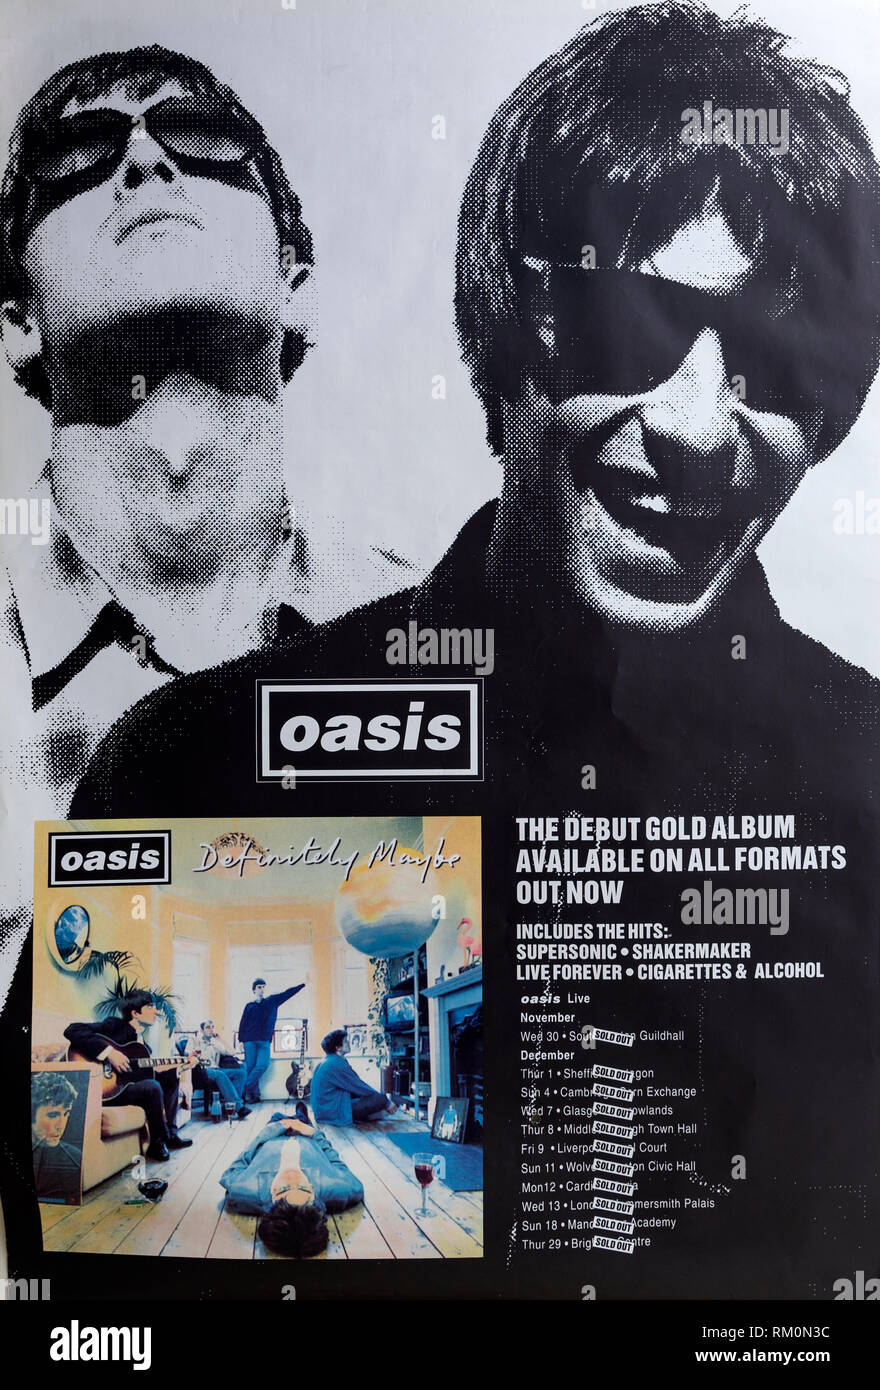 Oasis Definitely Maybe promo album Musical concert poster - Stock Image